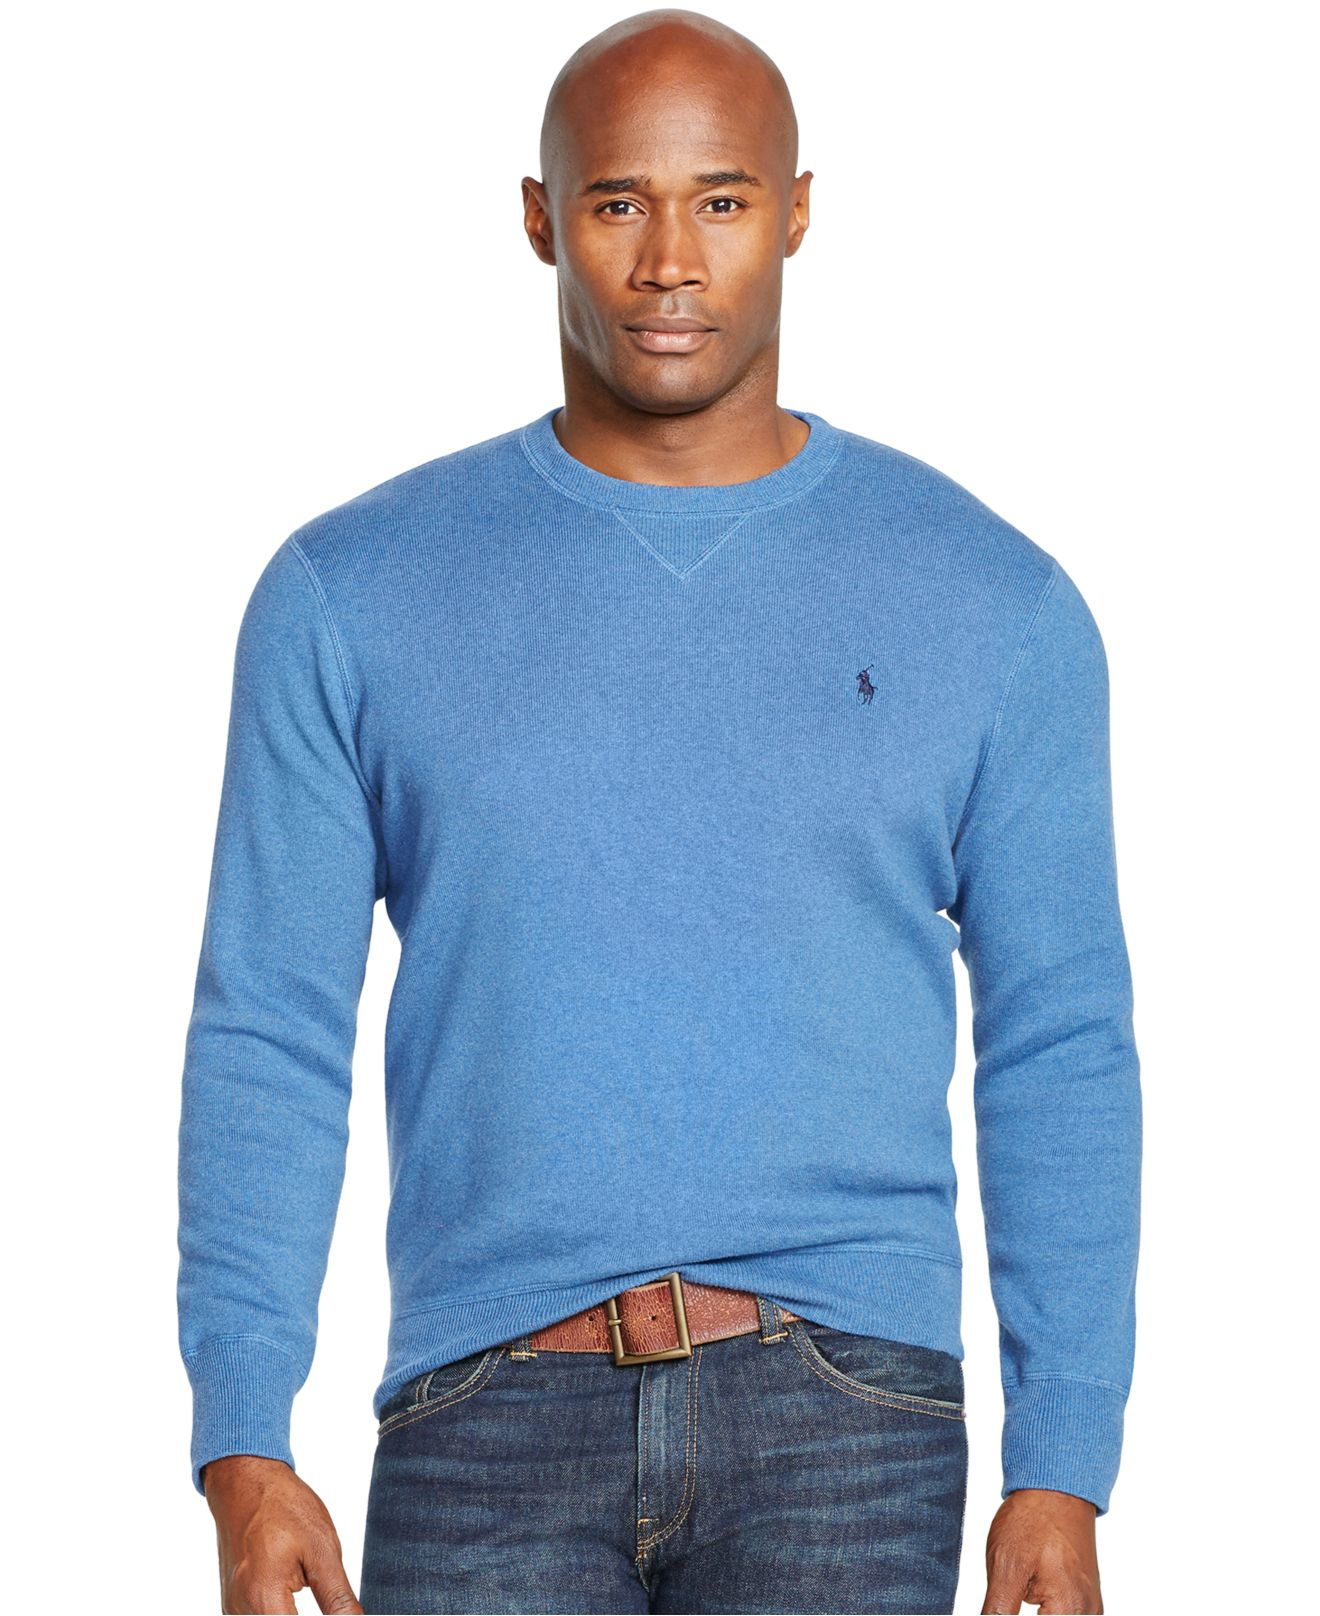 Polo ralph lauren Big And Tall Cotton Crewneck Sweatshirt in Blue ...